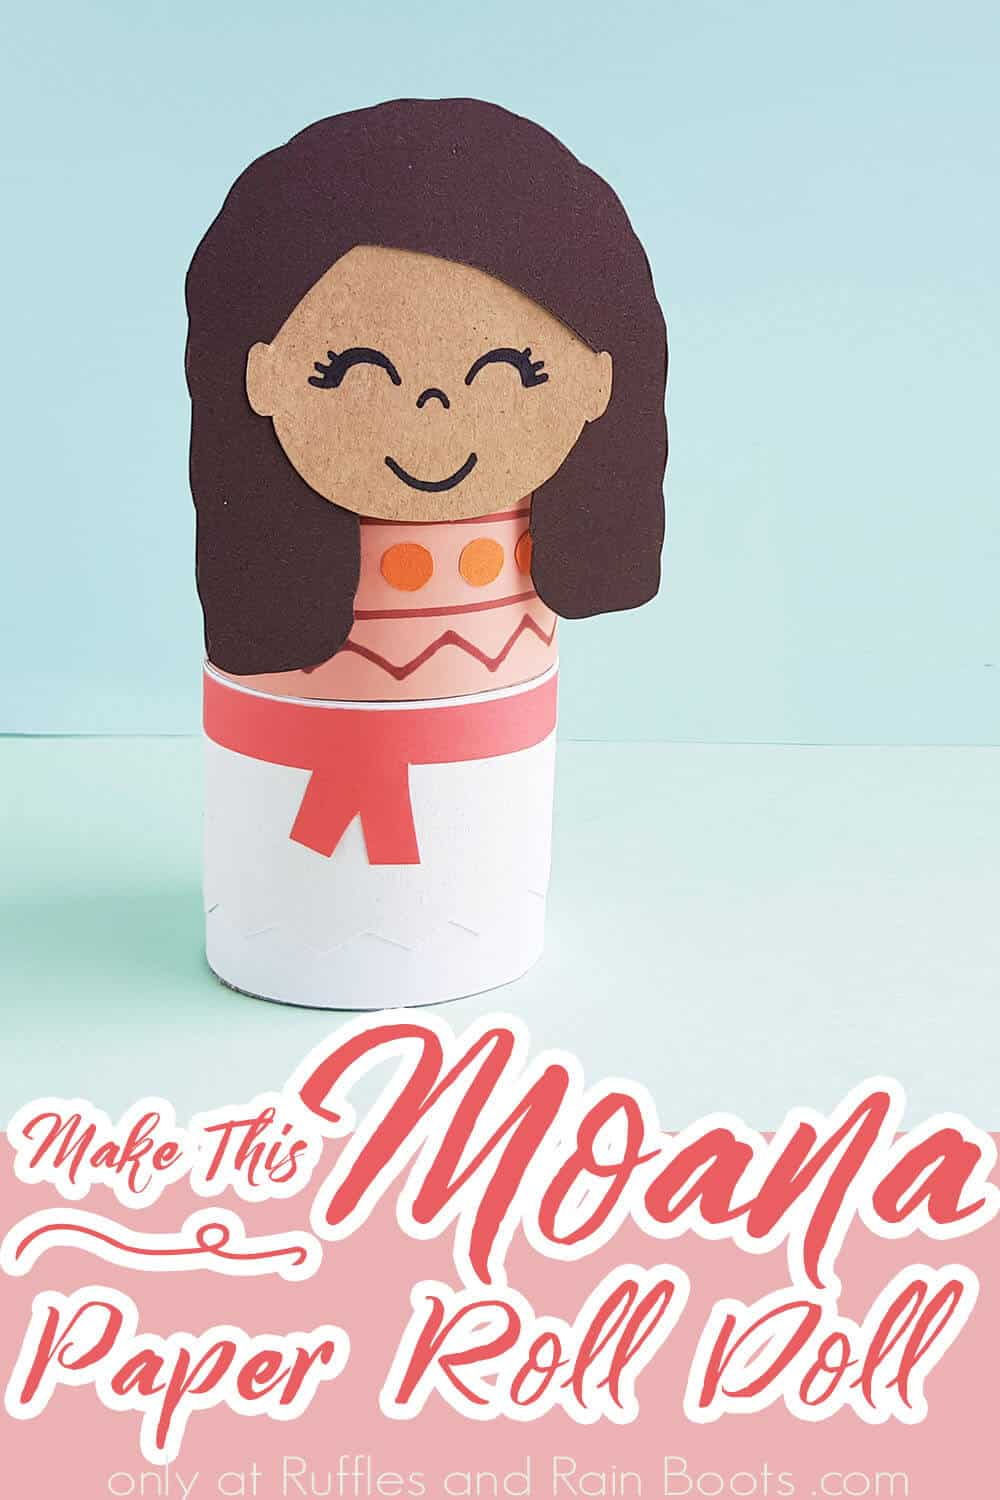 paper craft for kids moana movie with text which reads make this moana paper roll doll